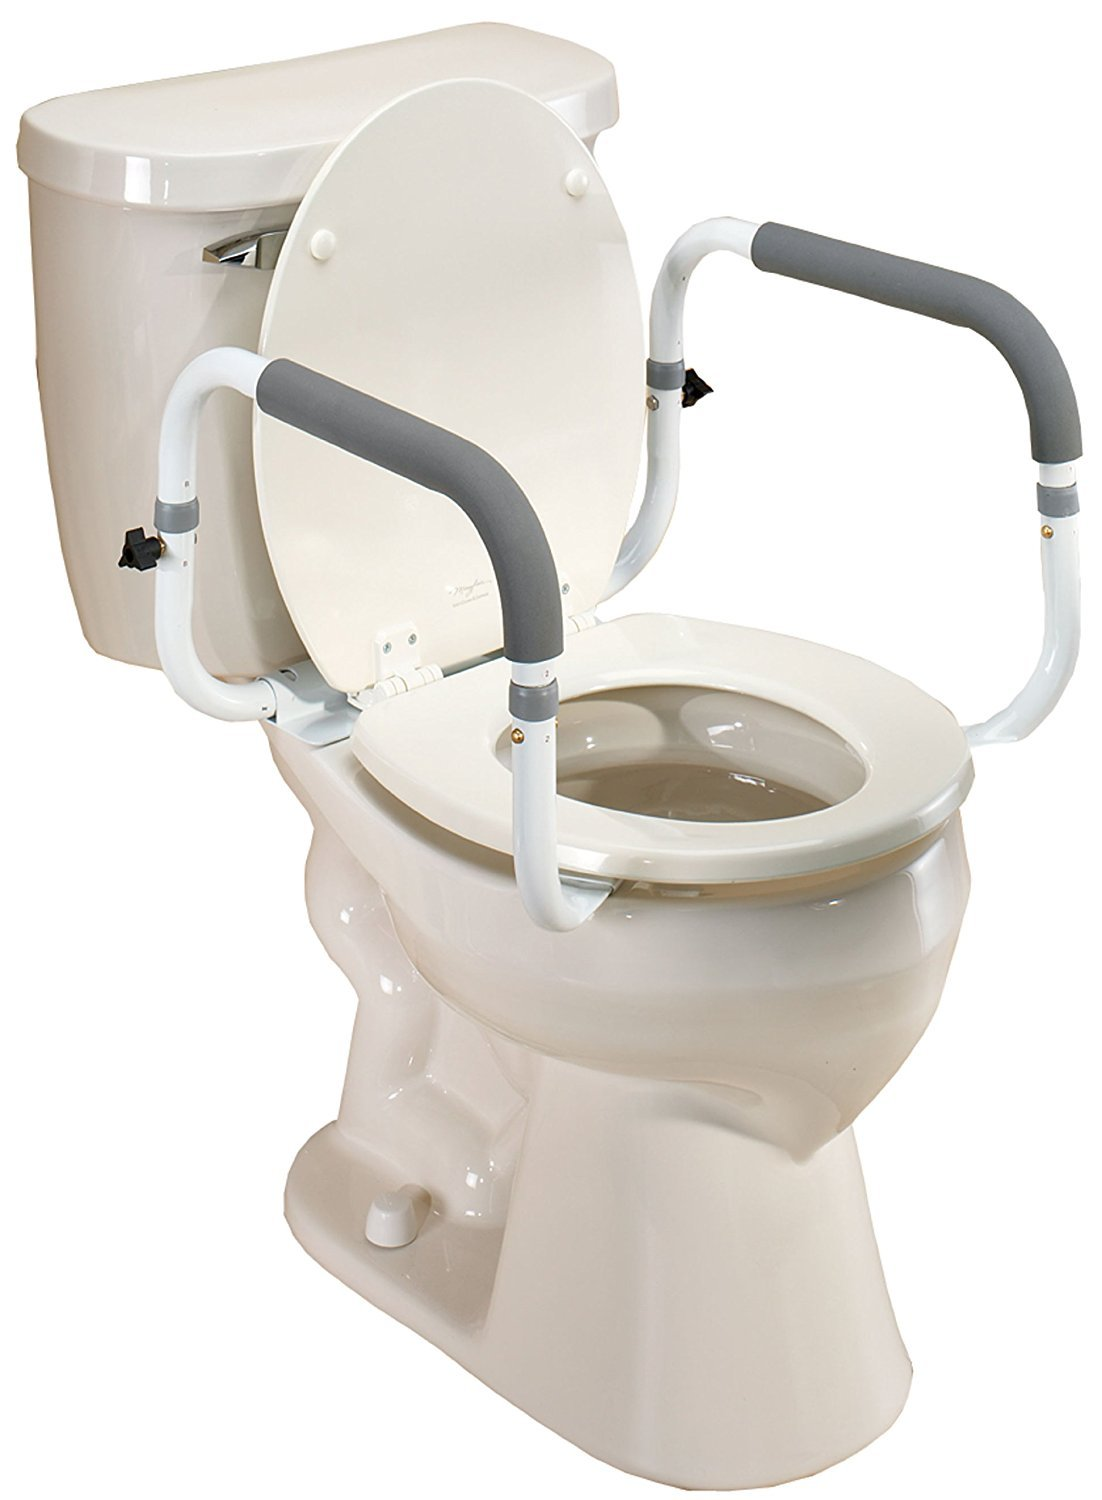 Toilet Seat Stand